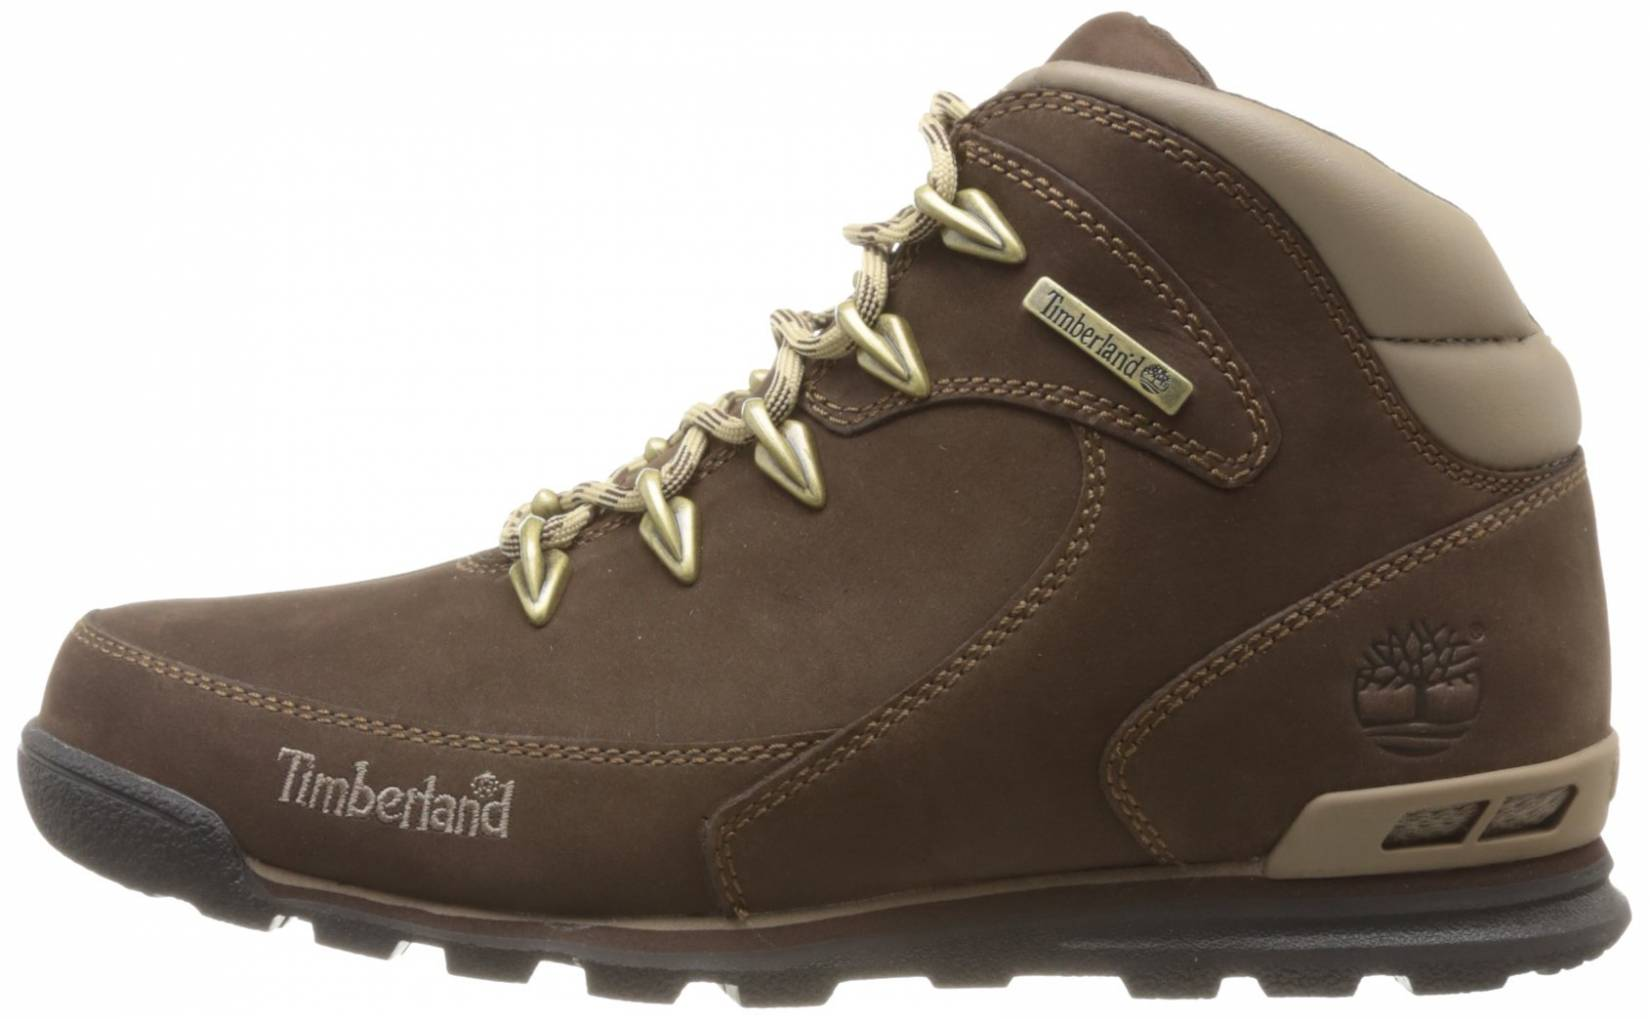 Leve postre Chaqueta  Only £90 + Review of Timberland Euro Rock Hiker | RunRepeat